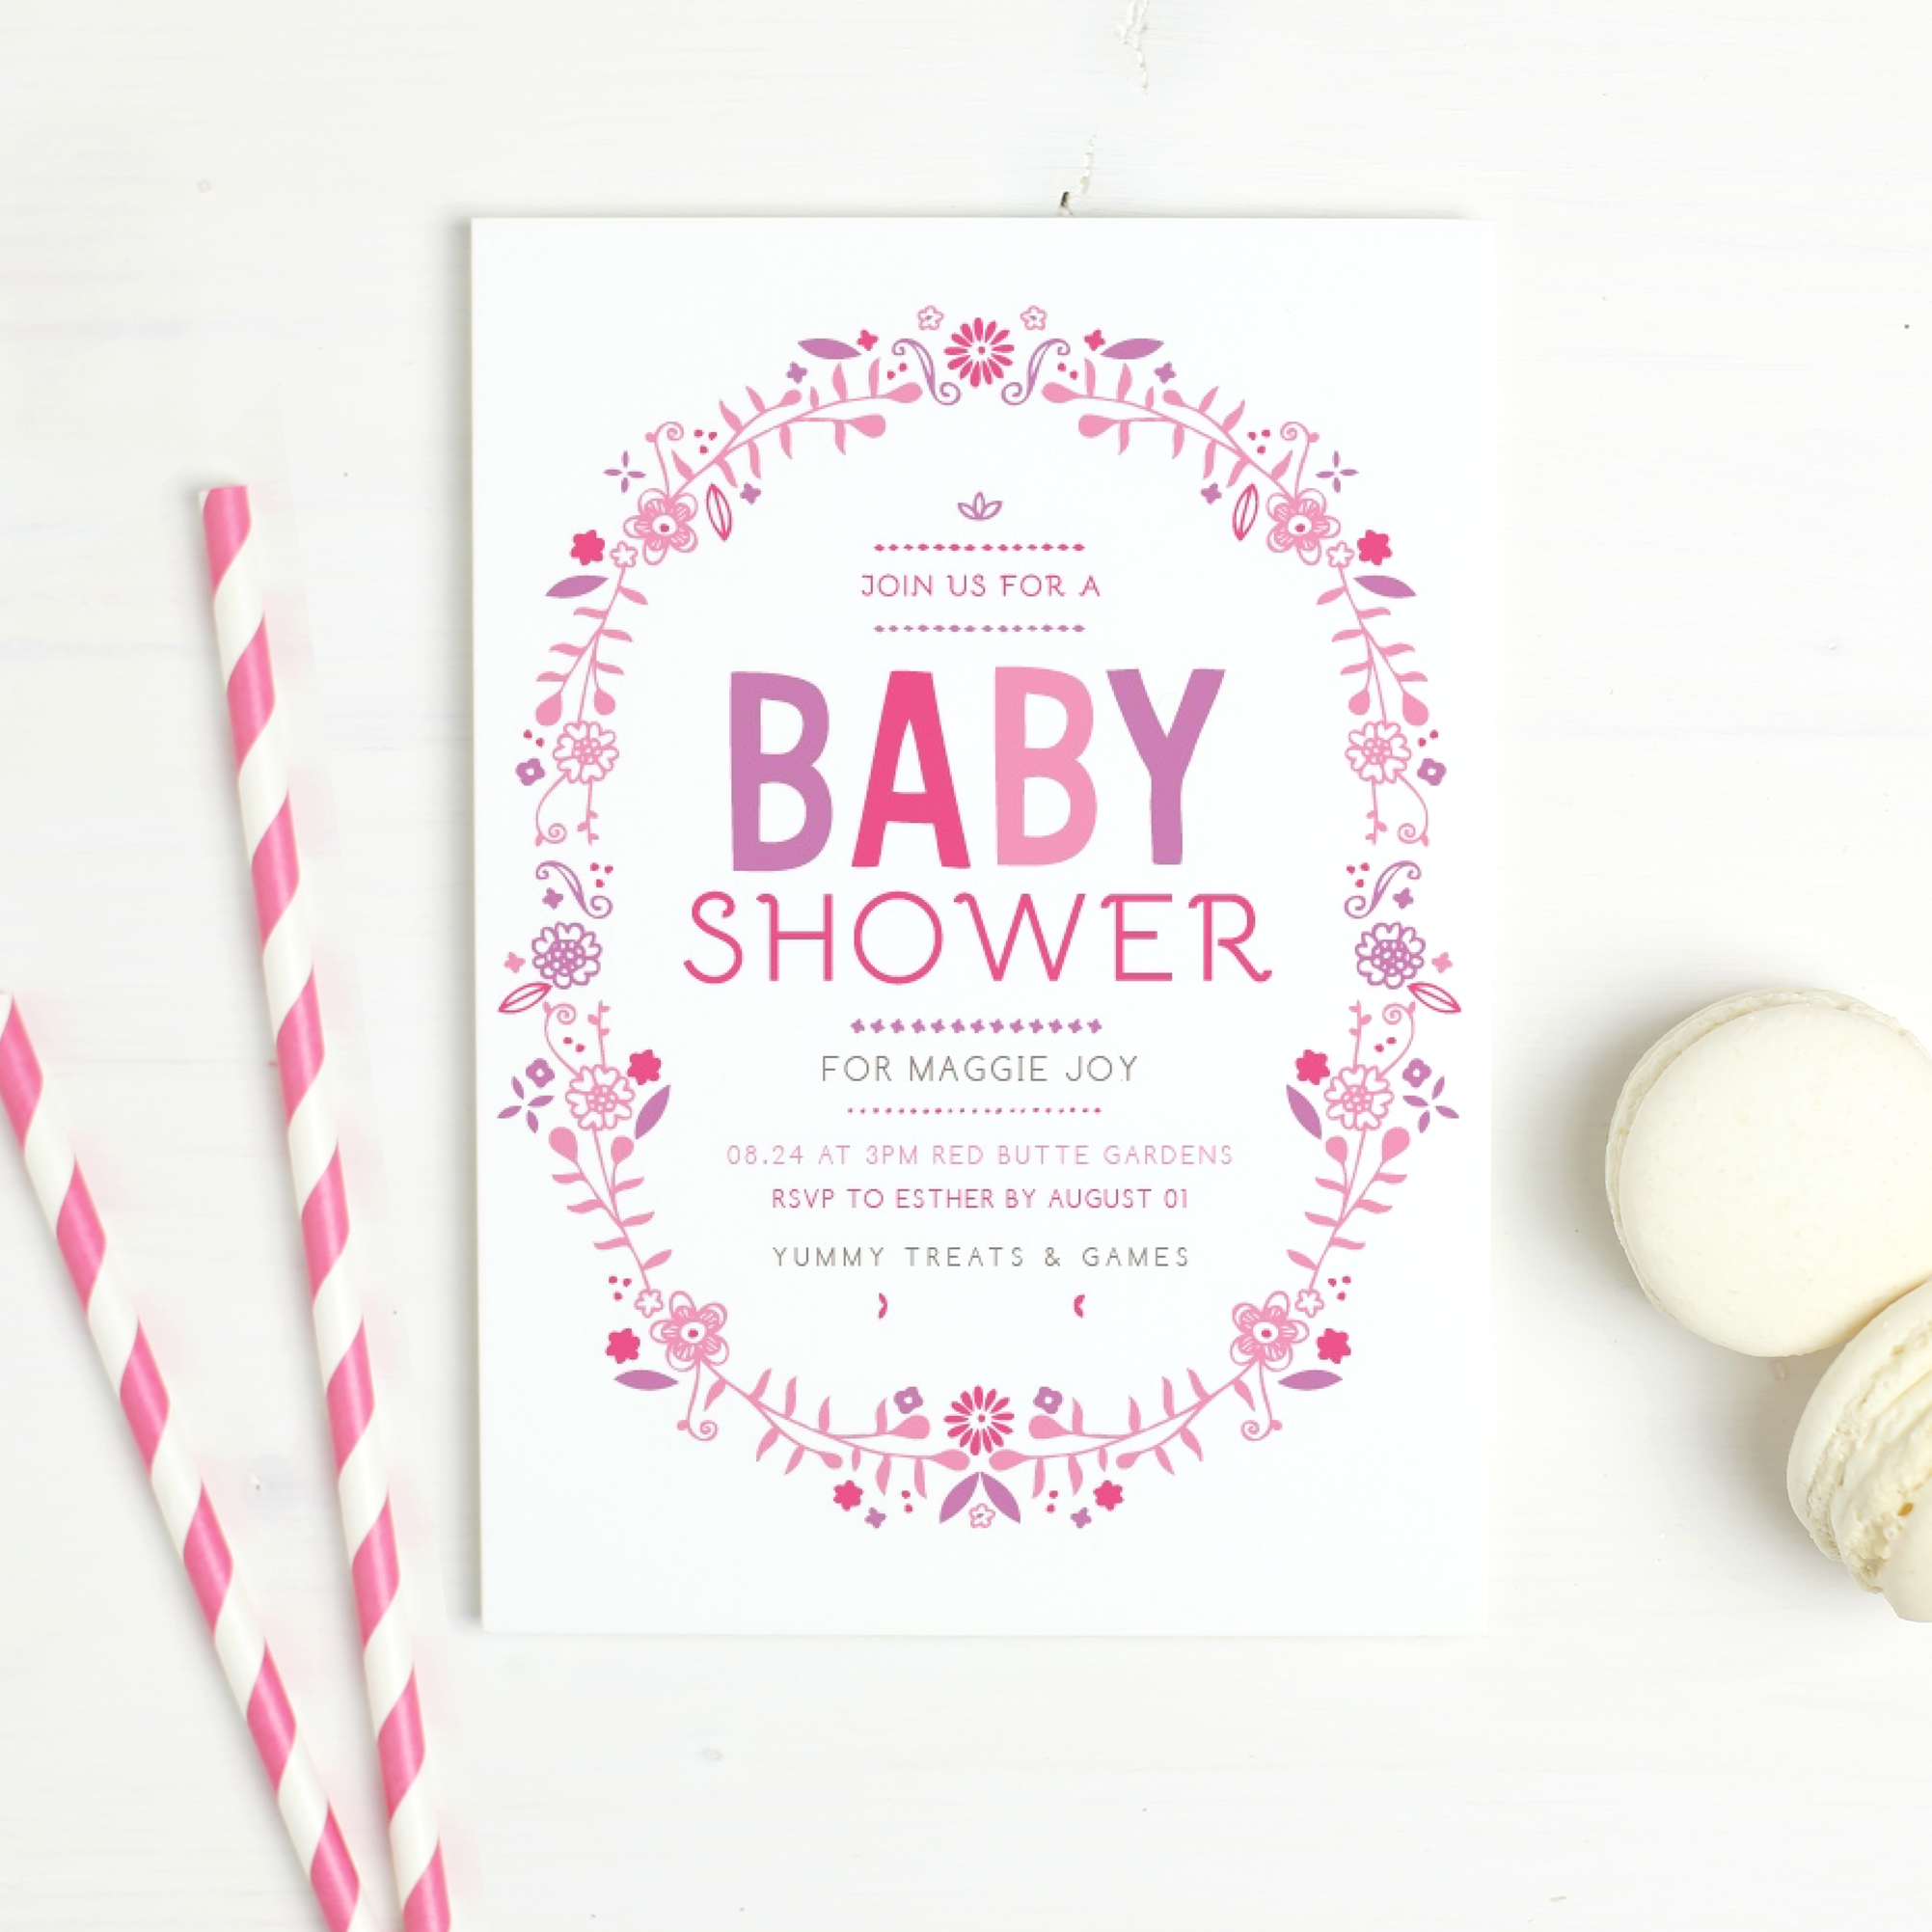 Basic_Invite_Baby_Shower_Invitations_7.png